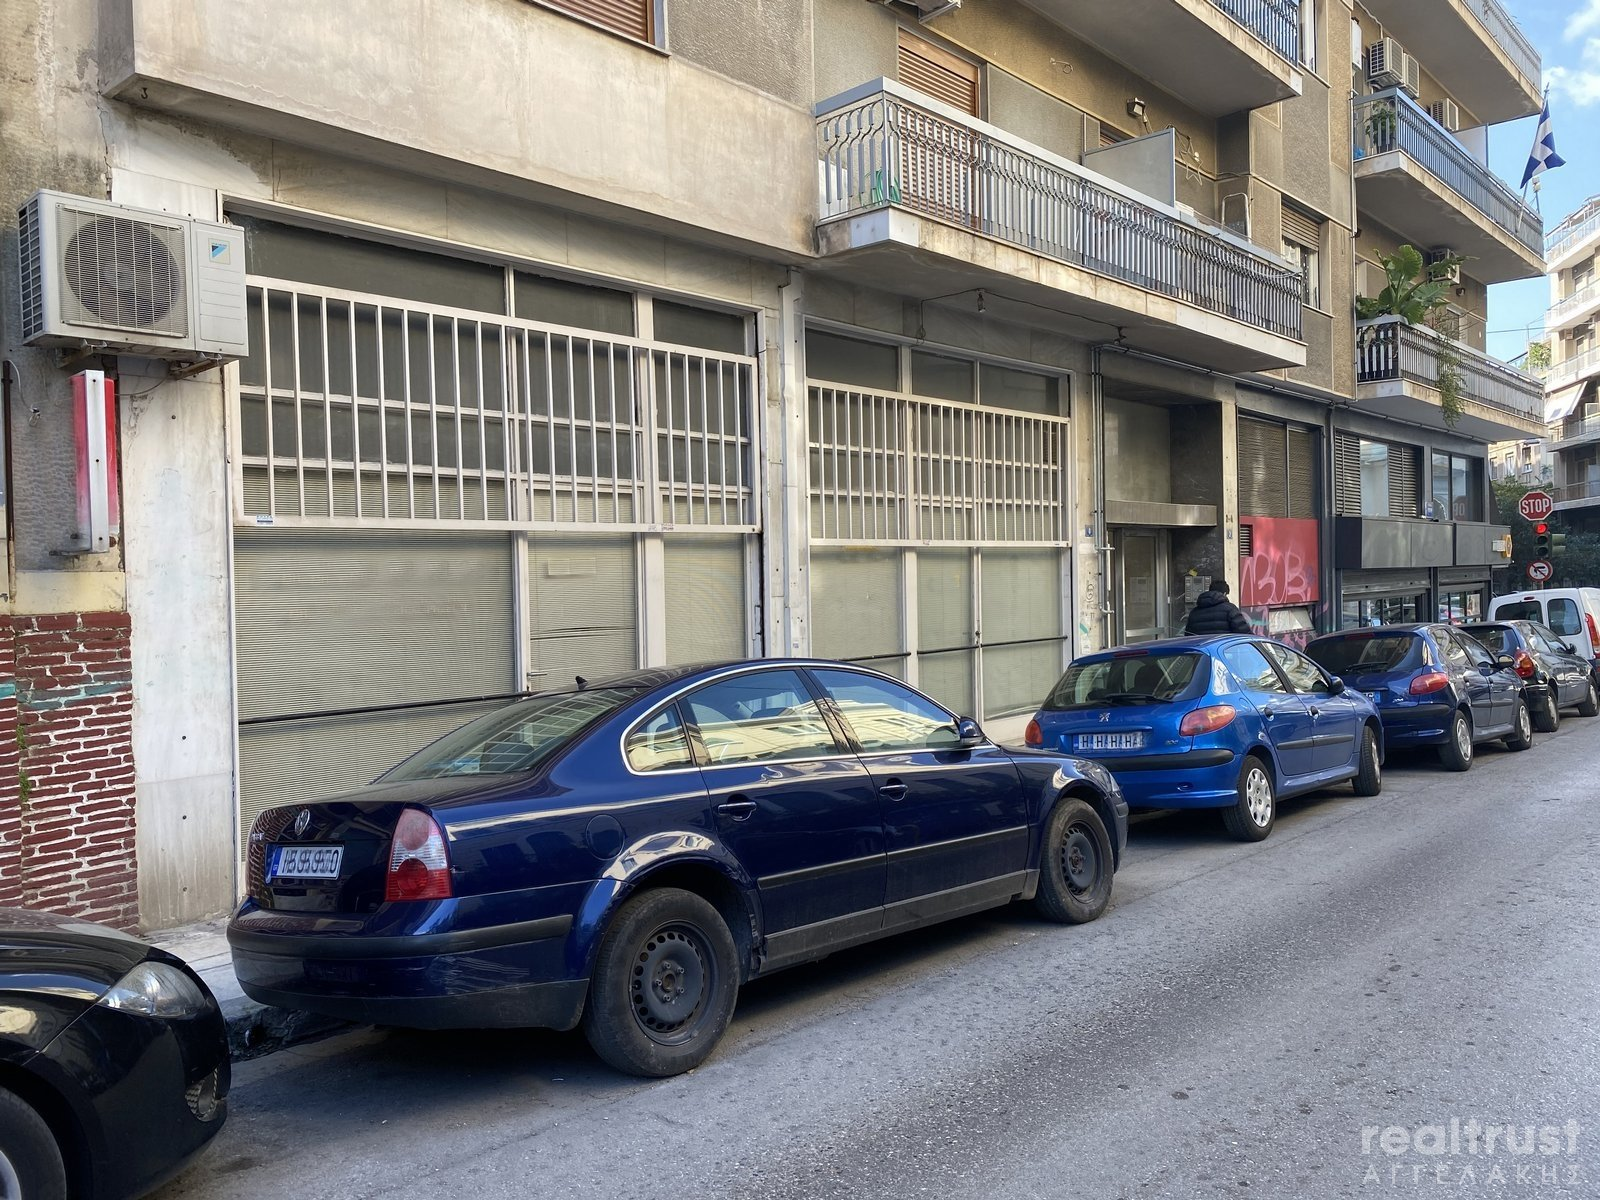 SHOP for Rent - ATHENS